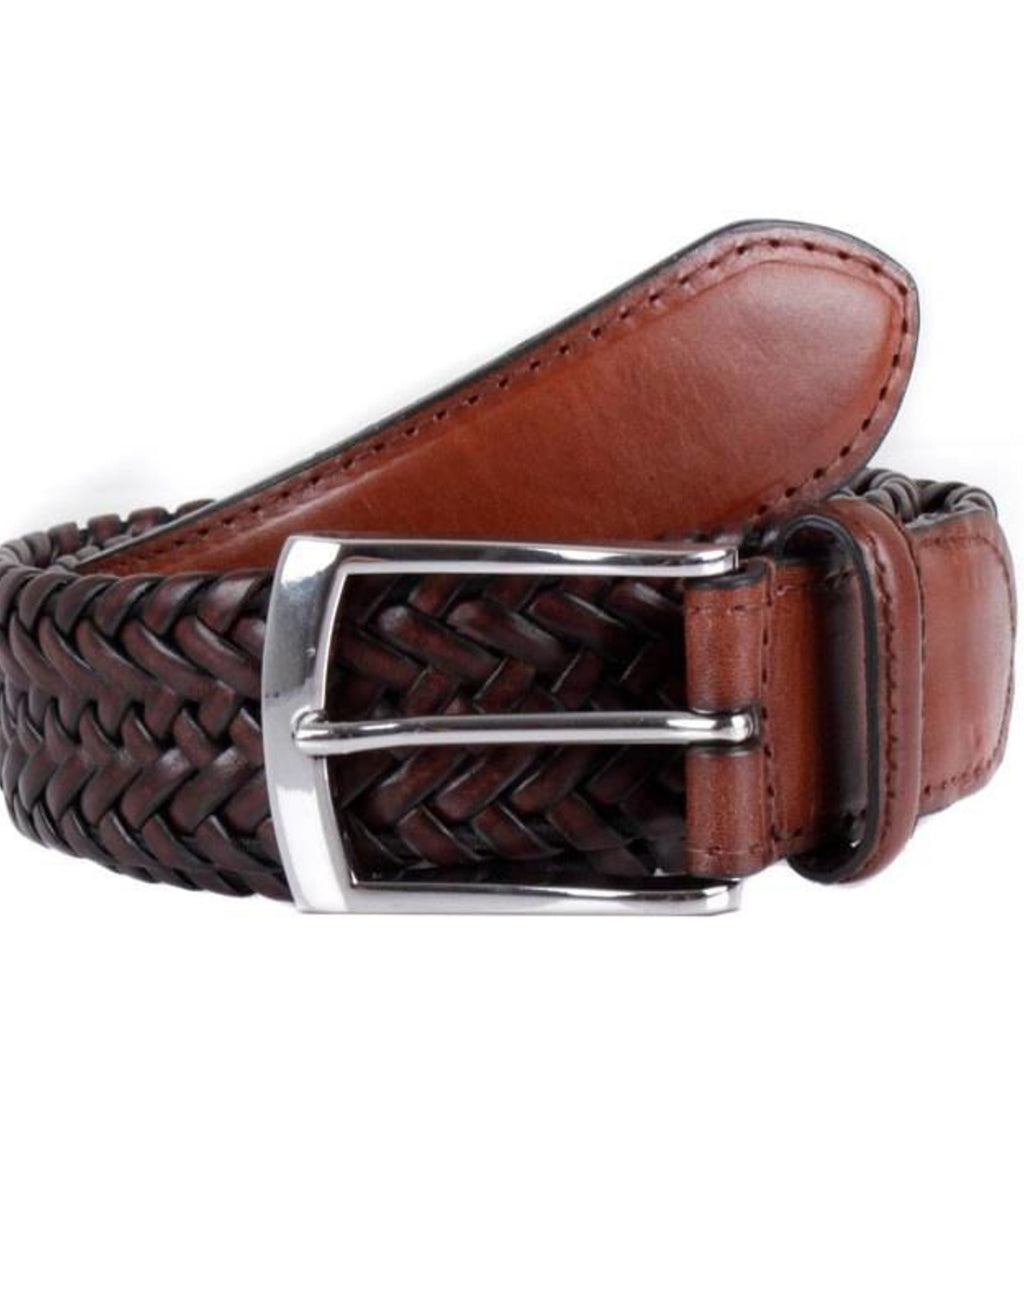 Dents Plaited Leather Casual Belt - Brown - MitchellMcCabe